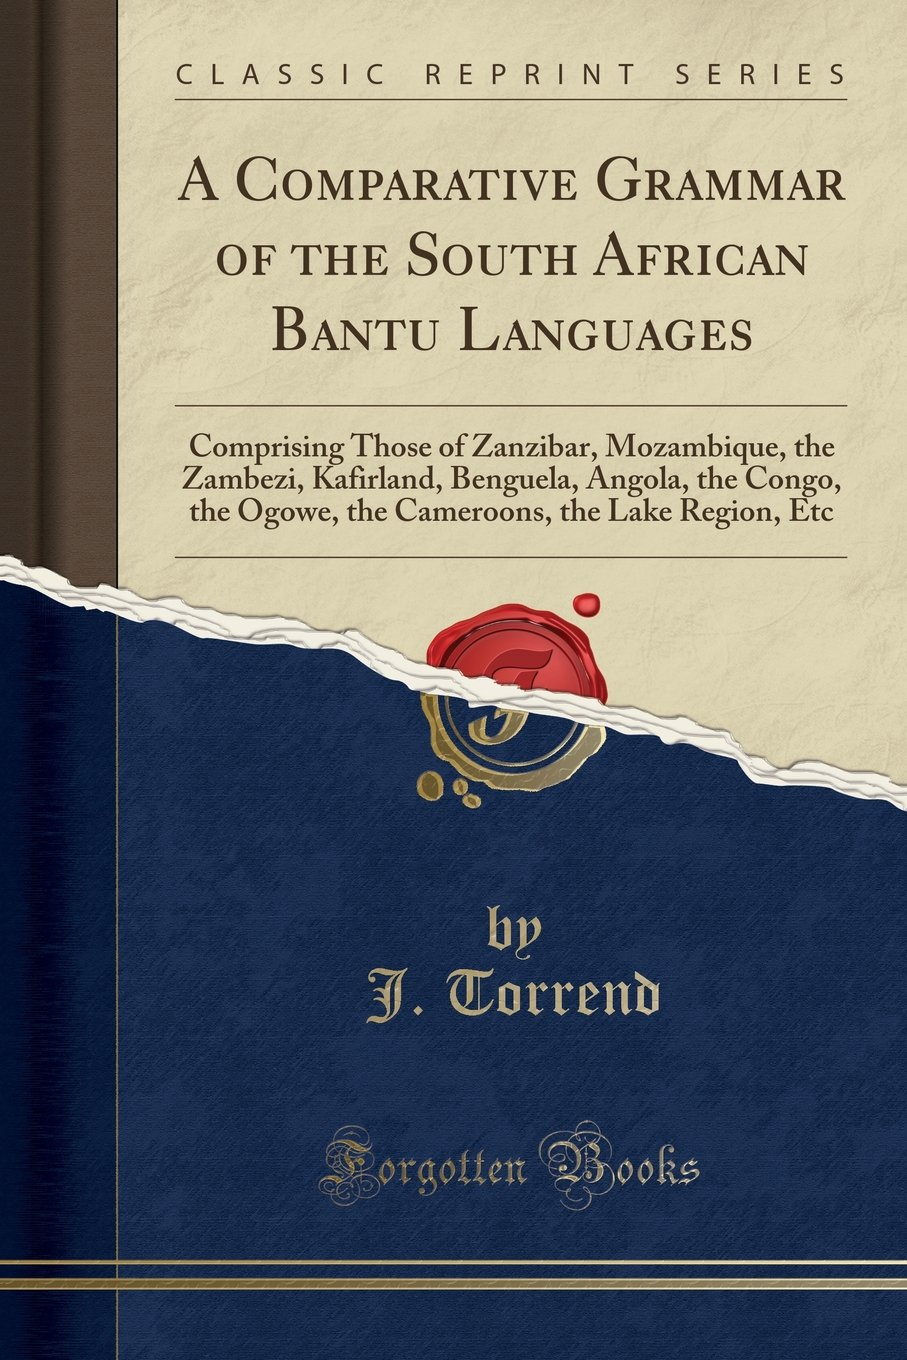 Download A Comparative Grammar of the South African Bantu Languages: Comprising Those of Zanzibar, Mozambique, the Zambezi, Kafirland, Benguela, Angola, the ... the Lake Region, Etc (Classic Reprint) pdf epub